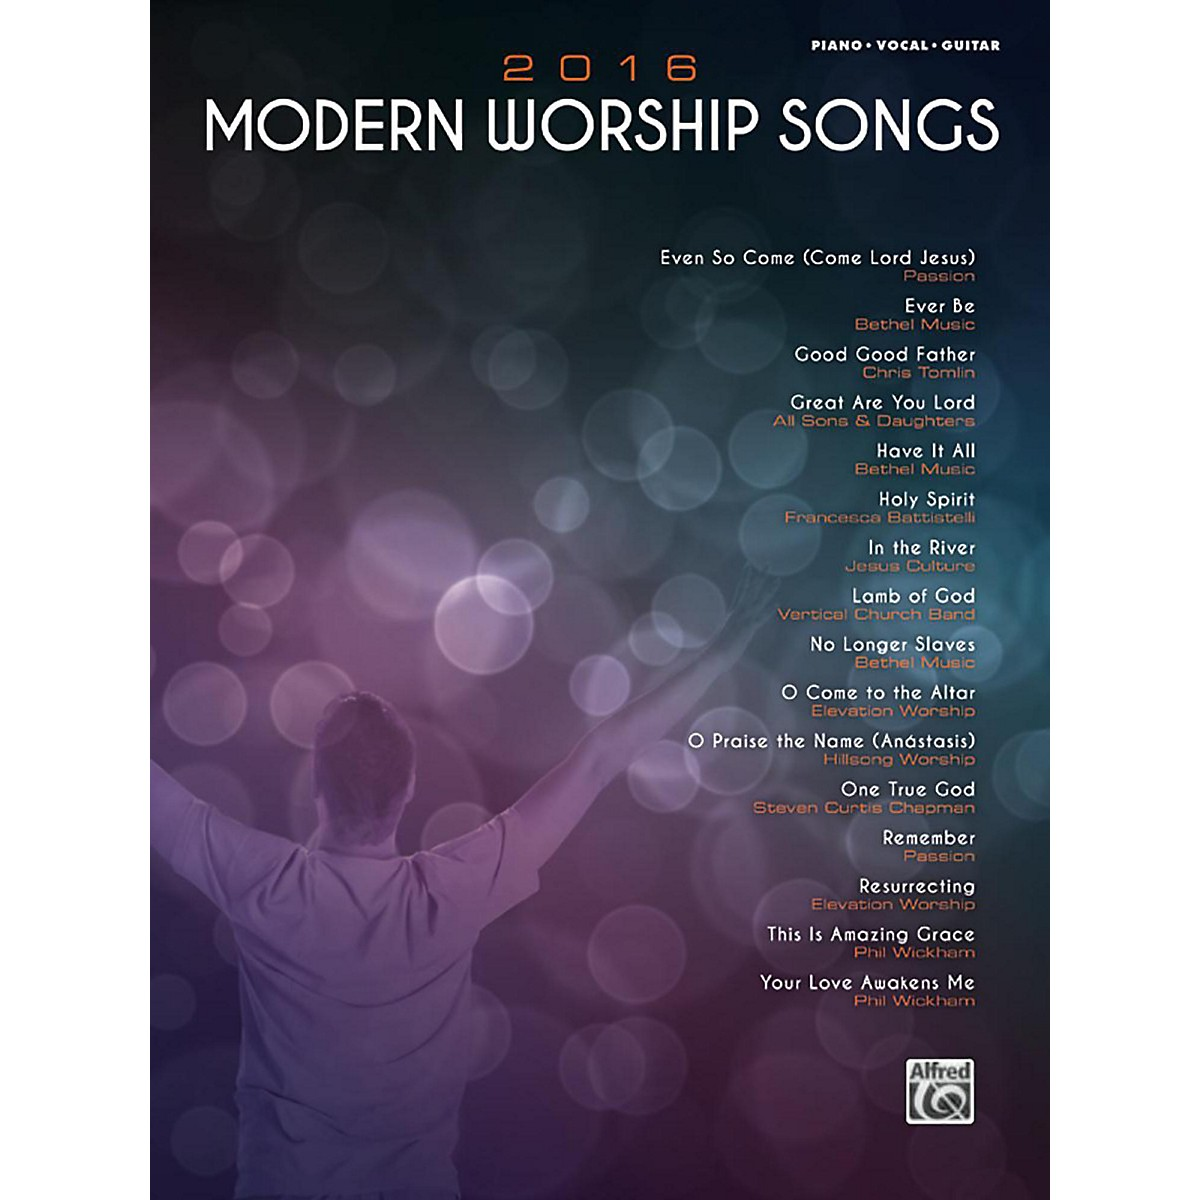 Alfred 2016 Modern Worship Songs Piano/Vocal/Guitar Songbook